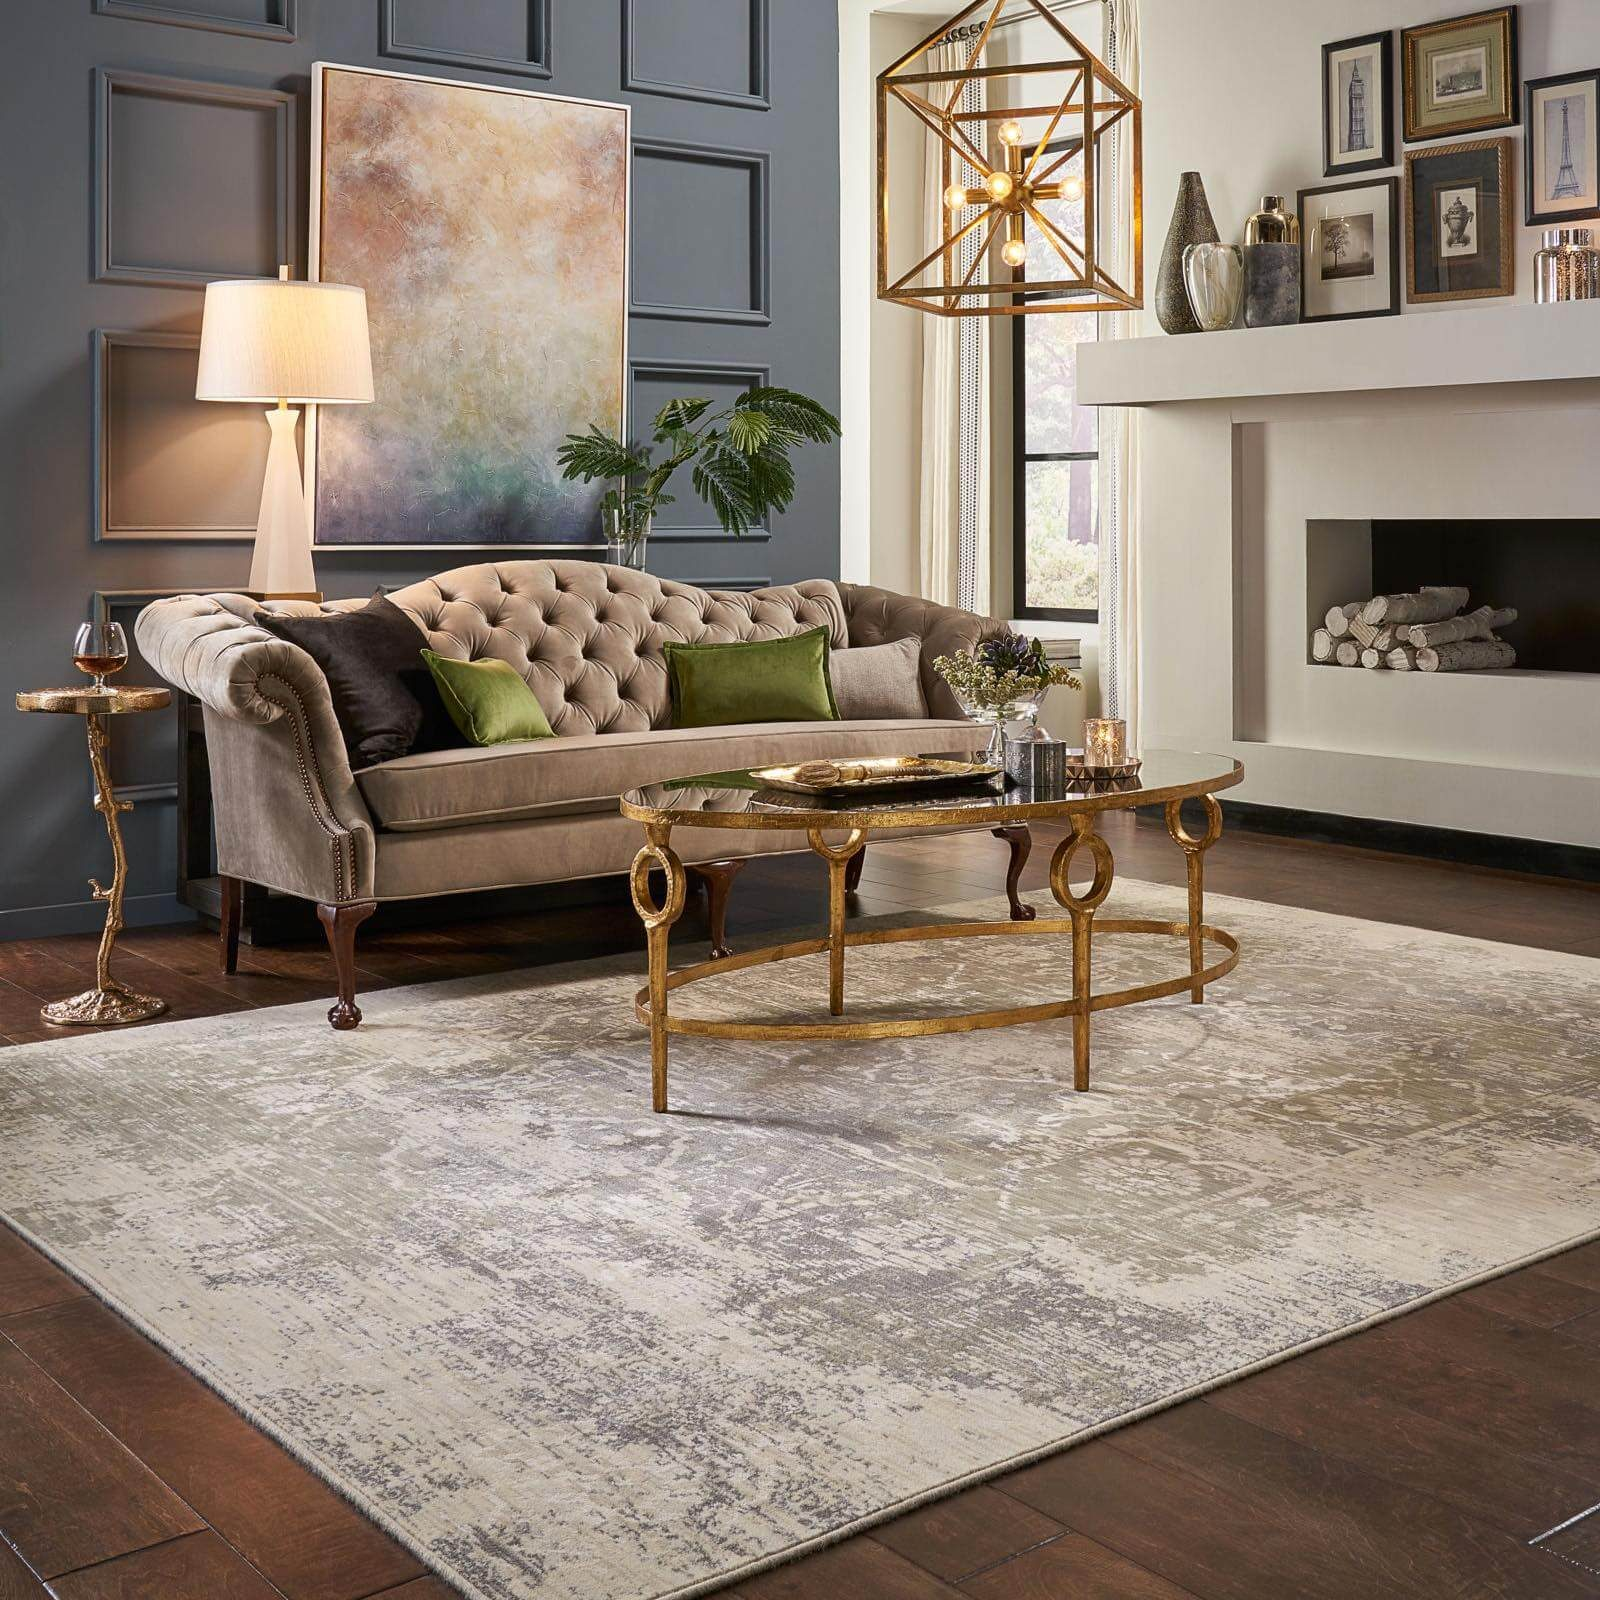 We Have A Huge Selection Of Area Rug Styles Varying From Hand Knotted To Machine Woven Creations In Oakville Toronto Burlington Mississauga North York